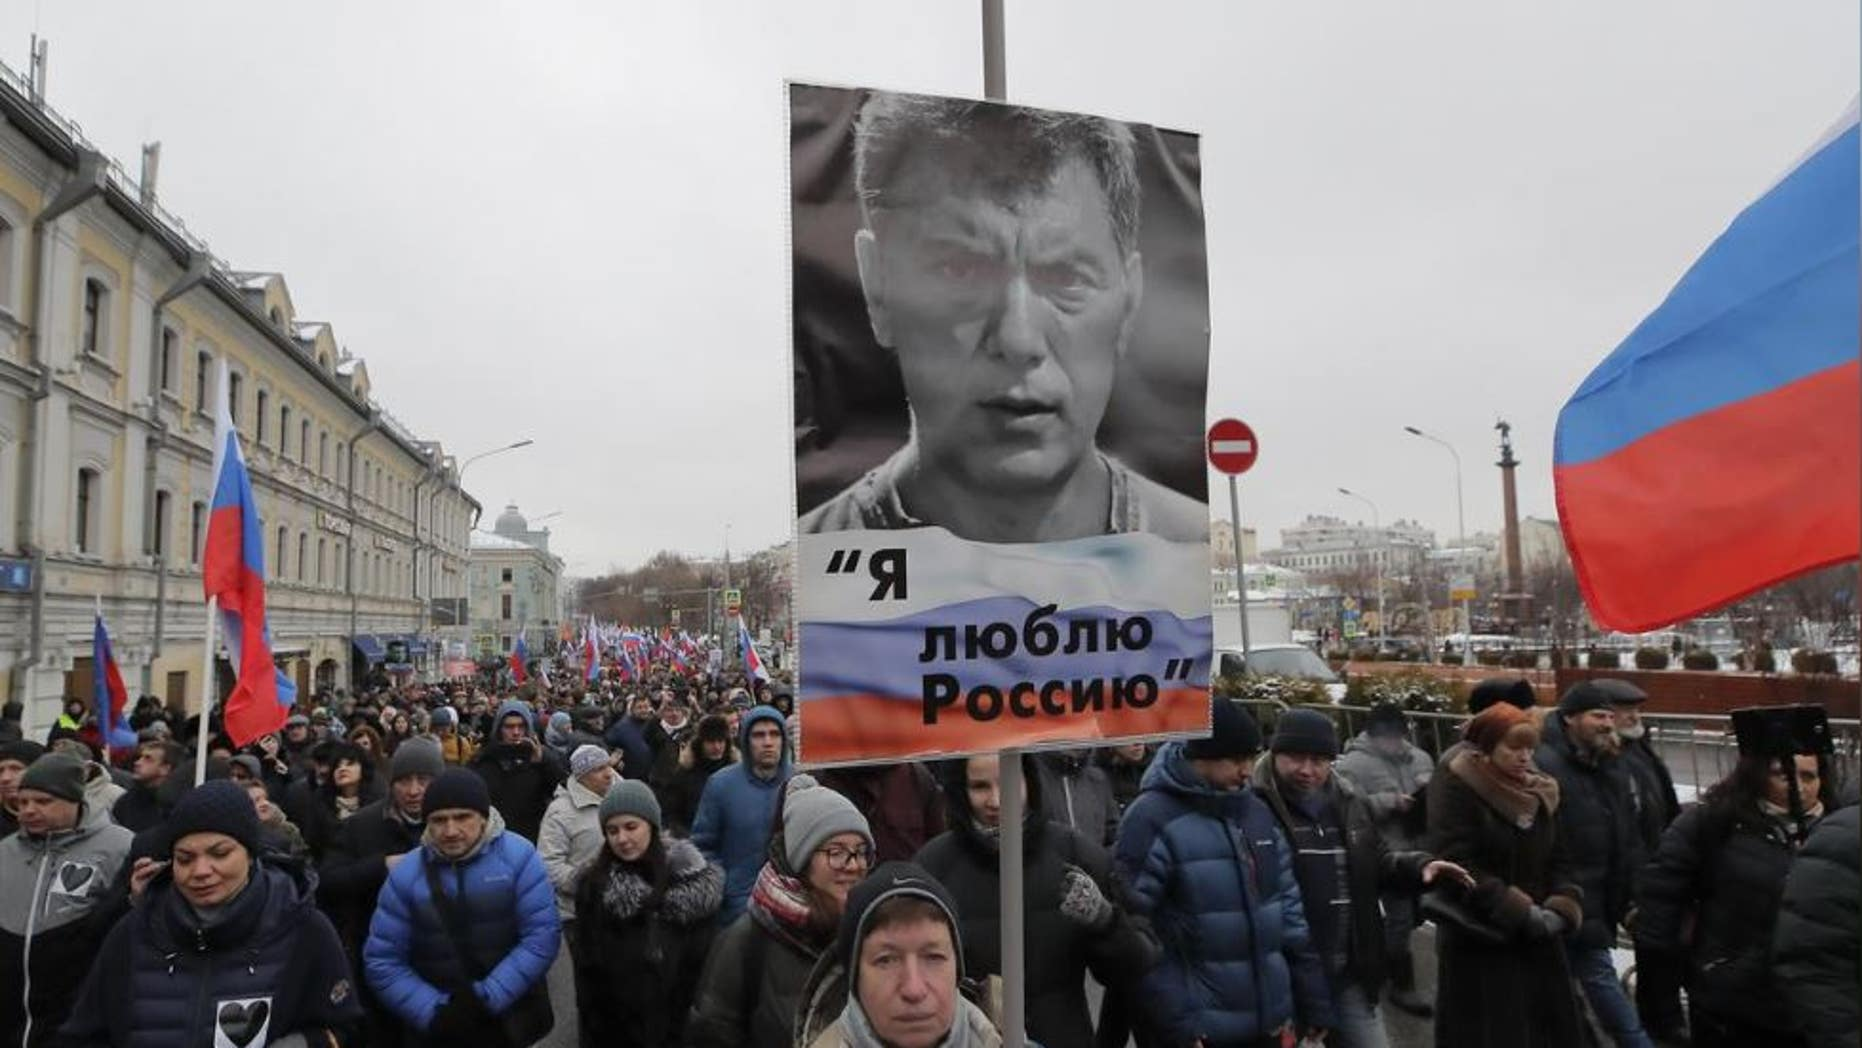 People attend a rally in memory of Russian opposition politician Boris Nemtsov who was assassinated in 2015 in Moscow Russia